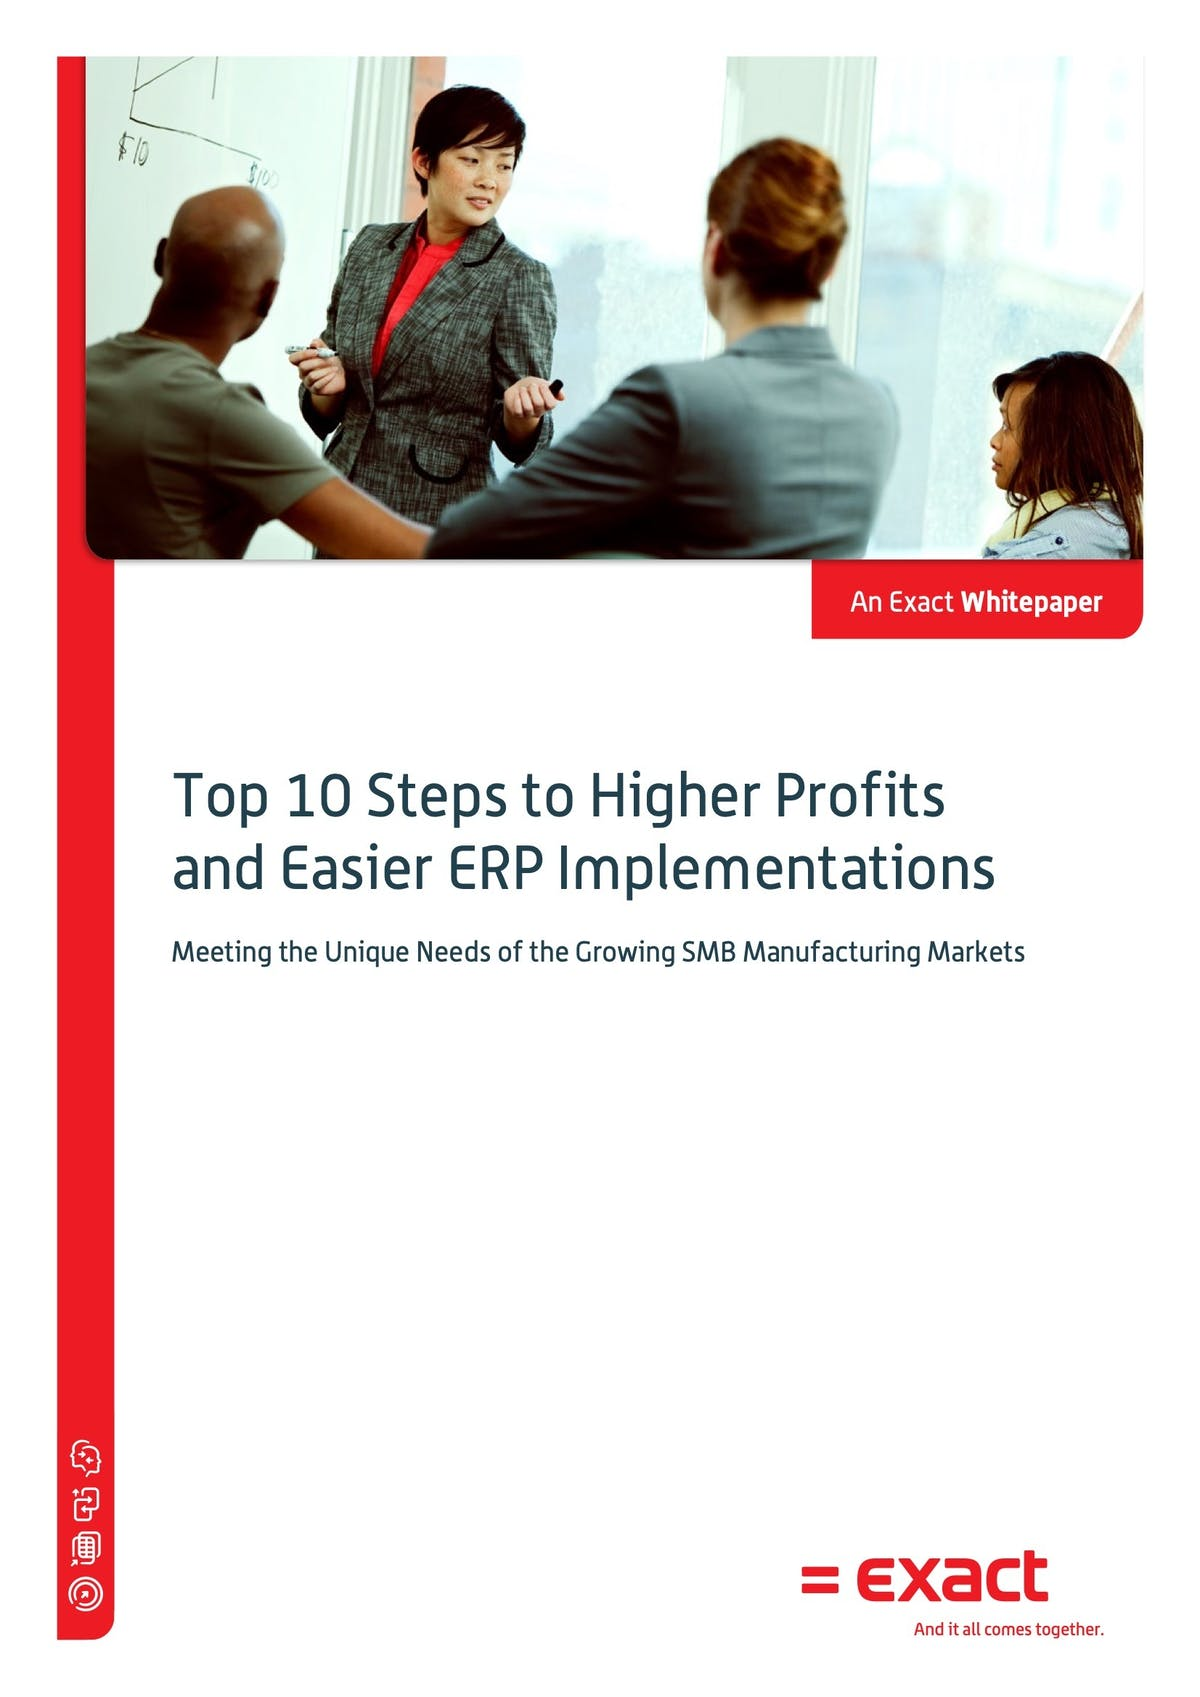 Macola Manufacturing Pro White Paper - Top 10 Steps to Higher Profits & Easier ERP Implementation